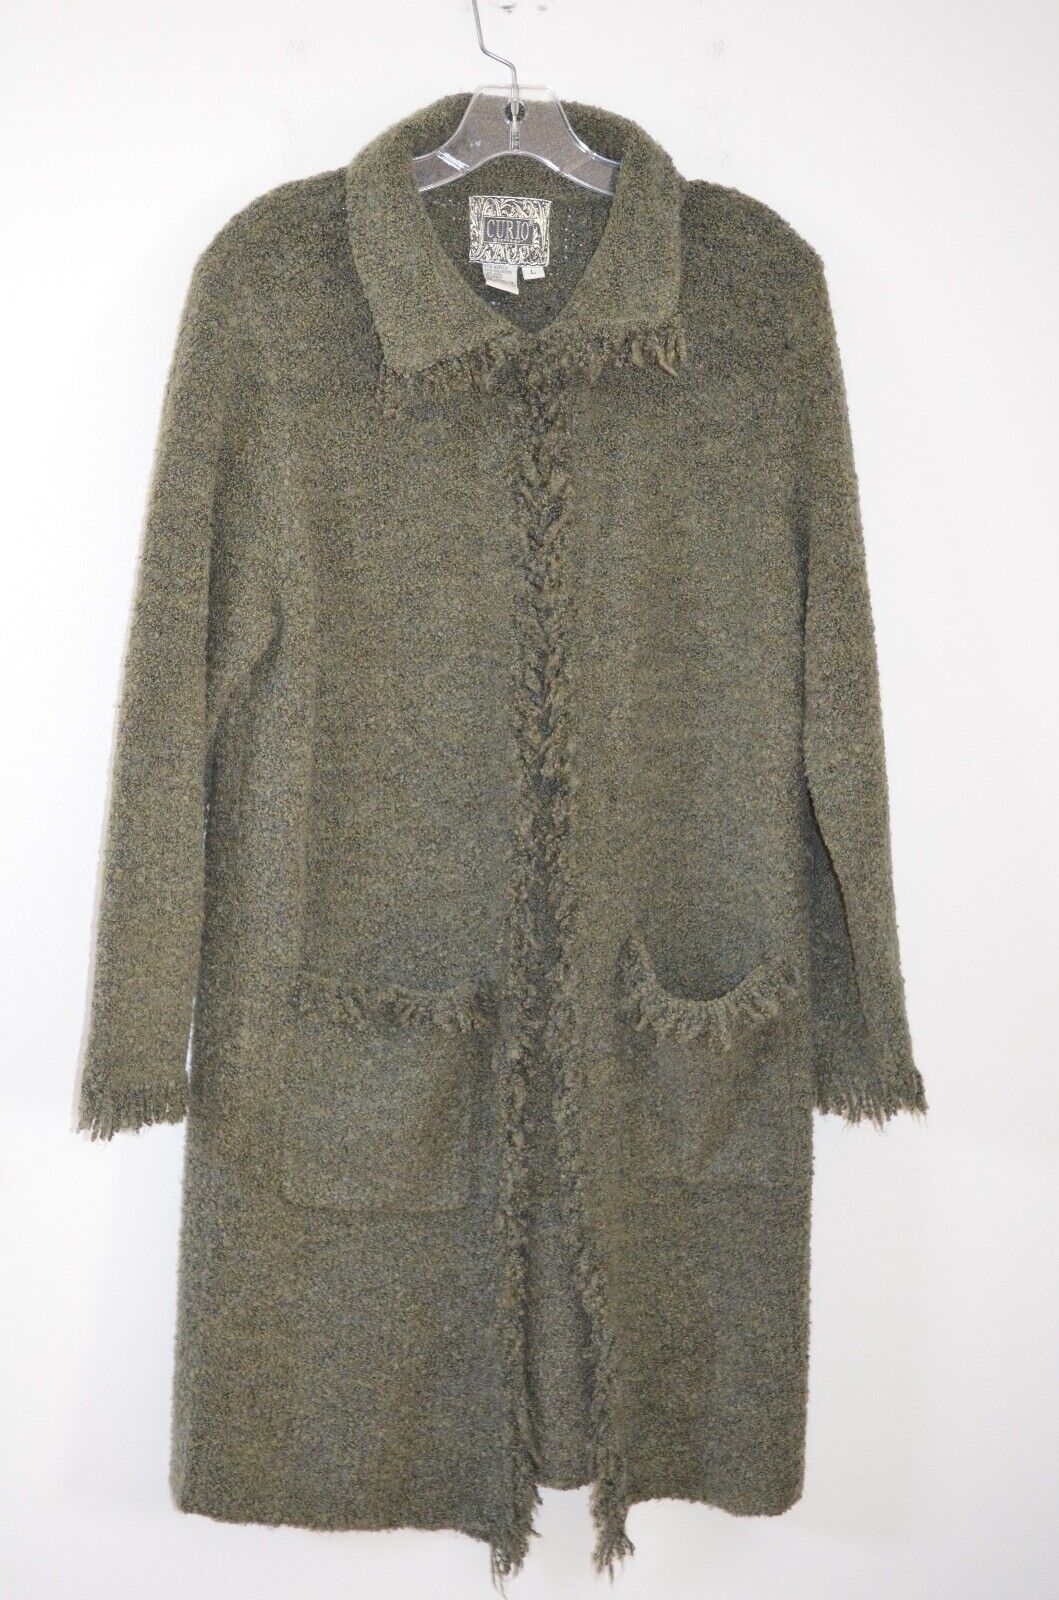 Anthropologie Curio Green Fringed 71% Acrylic Long Cardigan Sweater Size L